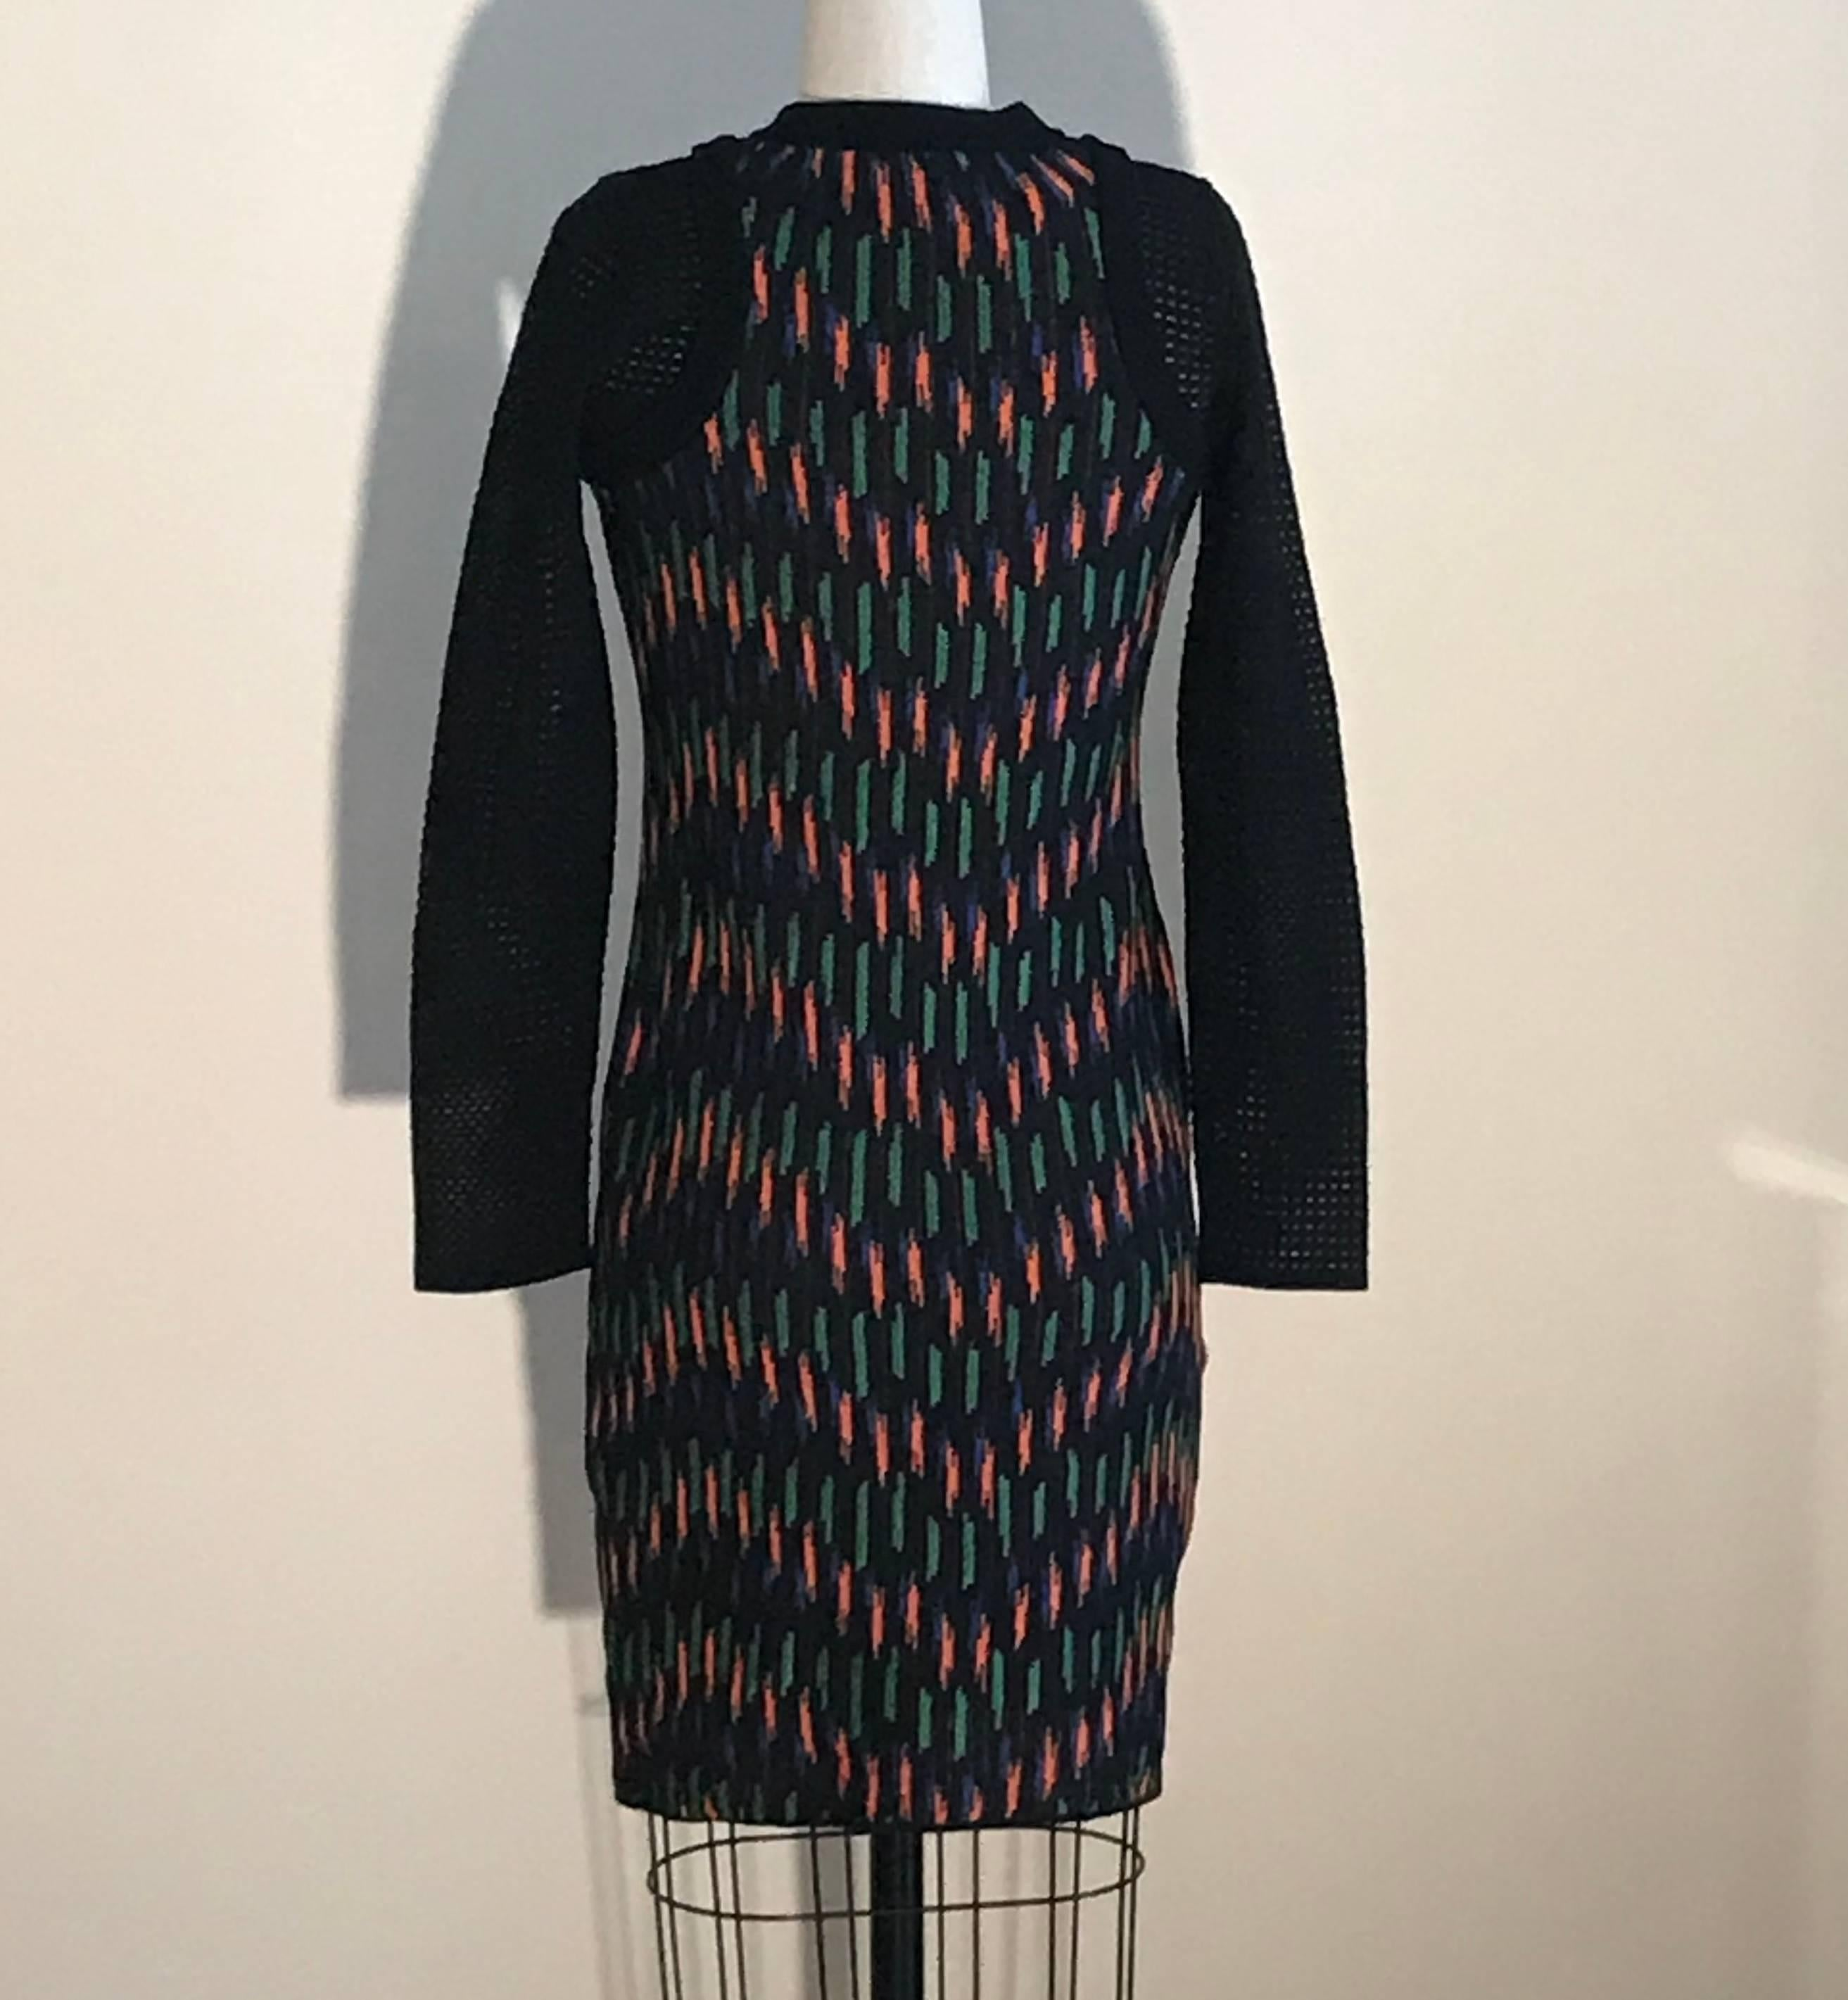 ca65fe7fadd New M Missoni Black Orange Blue Green Knit Sweater Dress with Mesh Knit  Sleeves For Sale at 1stdibs